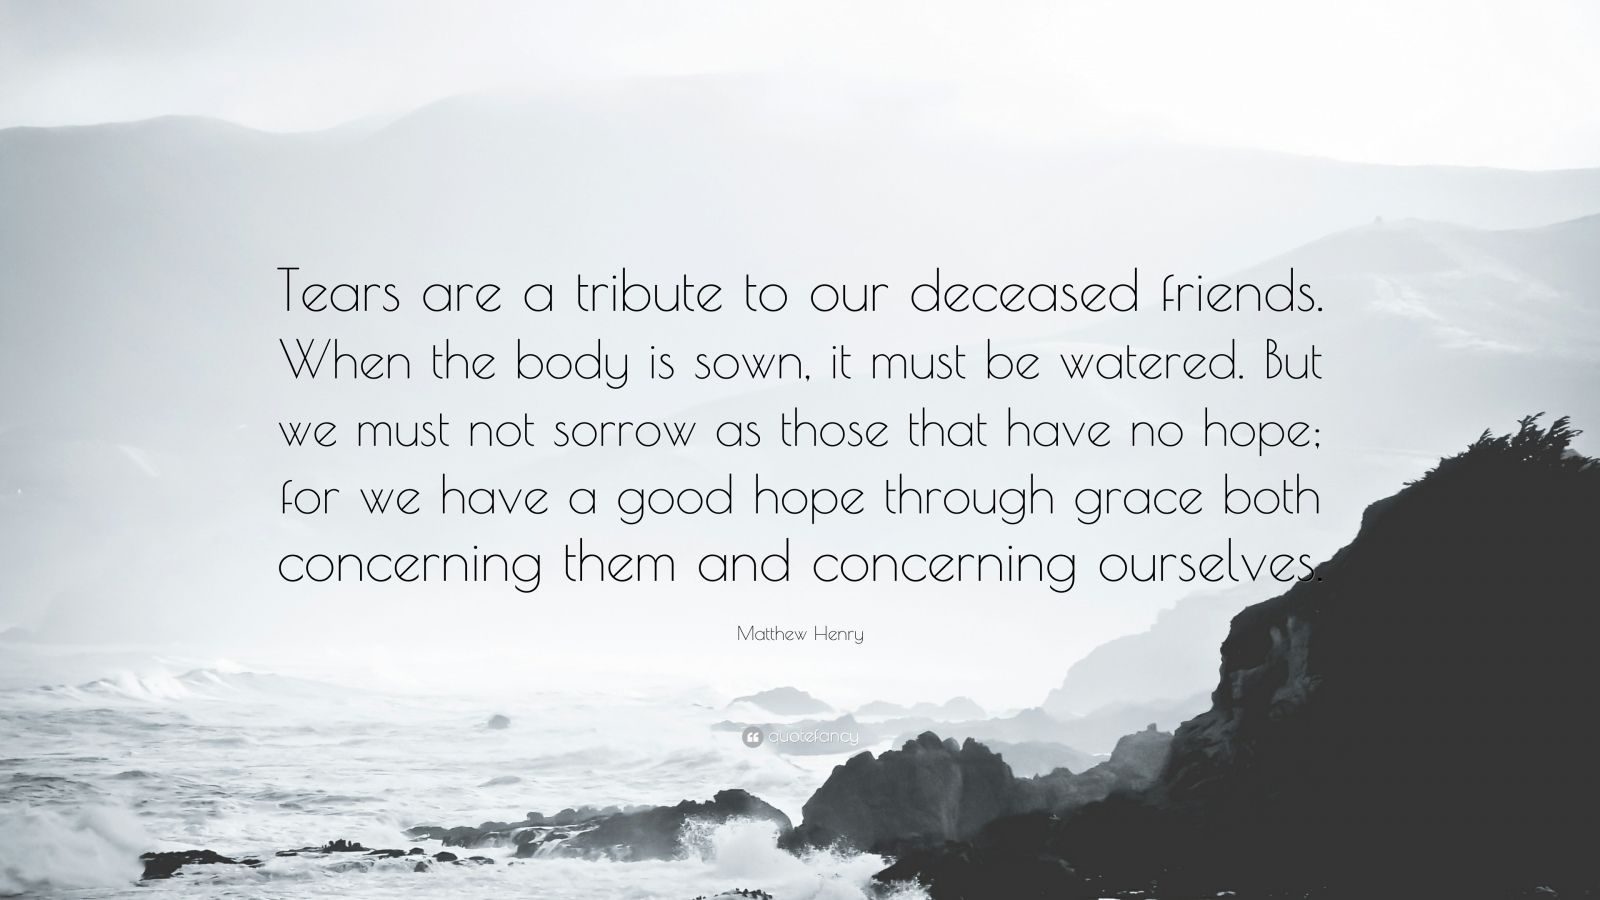 """Matthew Henry Quote: """"Tears are a tribute to our deceased friends. When the body is sown, it must be watered. But we must not sorrow as those that have no hope; for we have a good hope through grace both concerning them and concerning ourselves."""""""